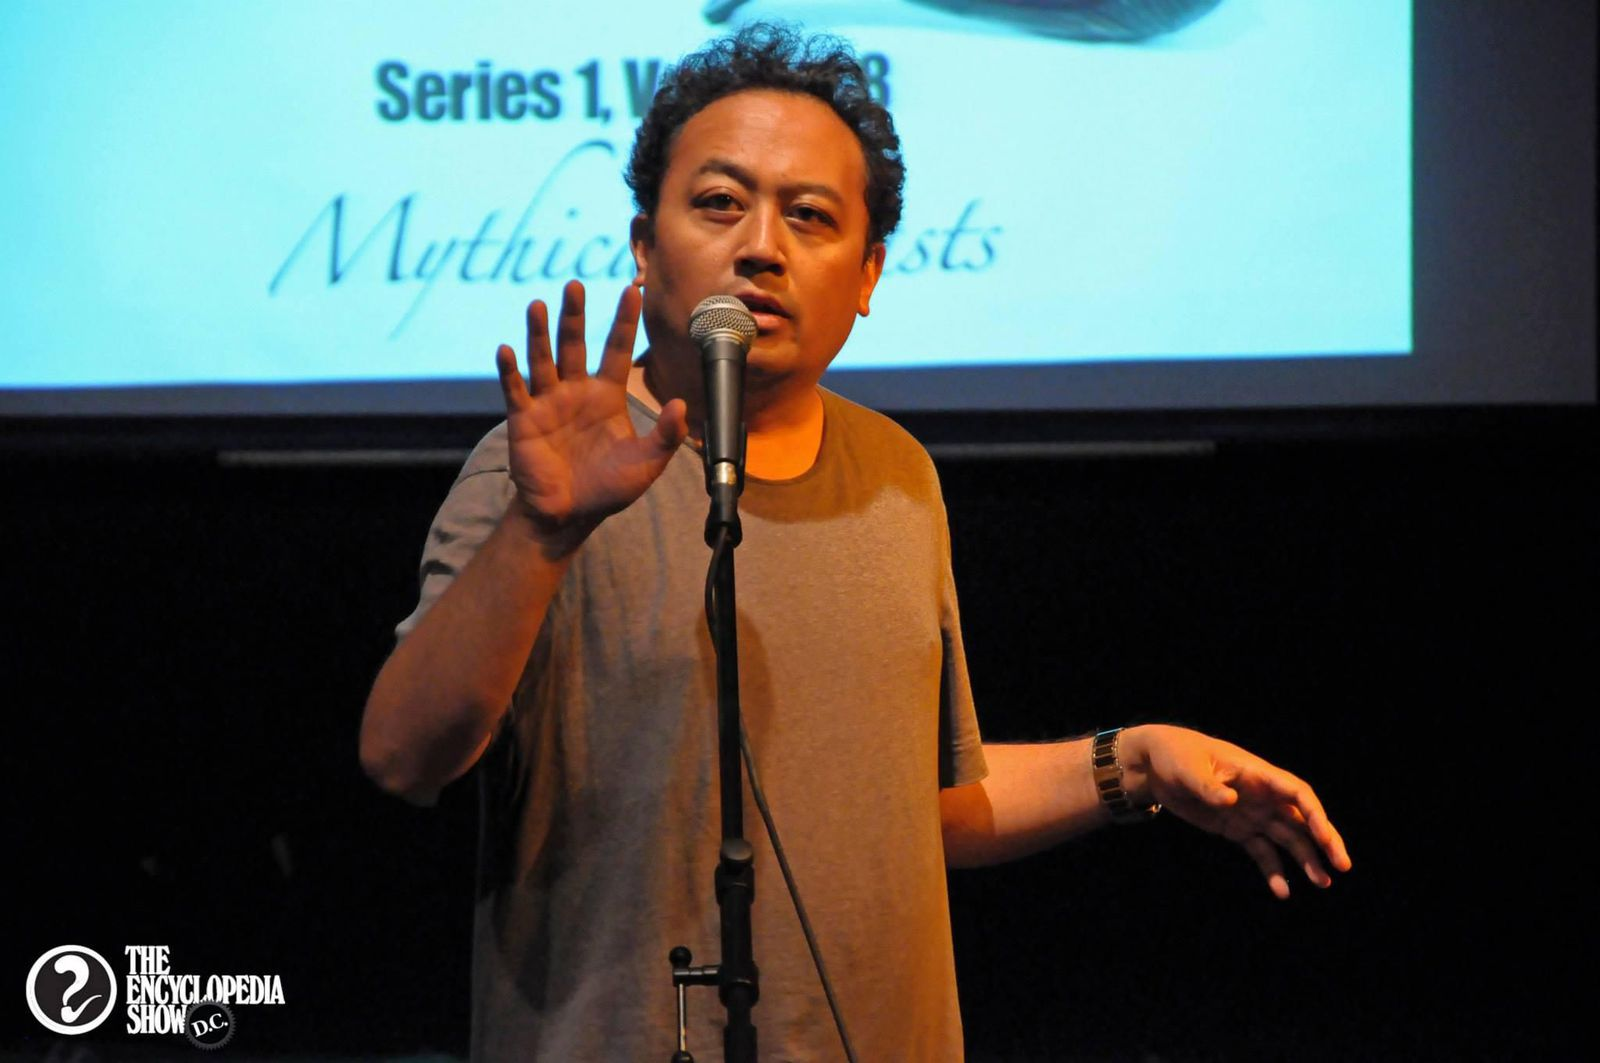 Why Spoken Word Artist Regie Cabico Calls Himself an 'Accidental Poet' | At the Smithsonian